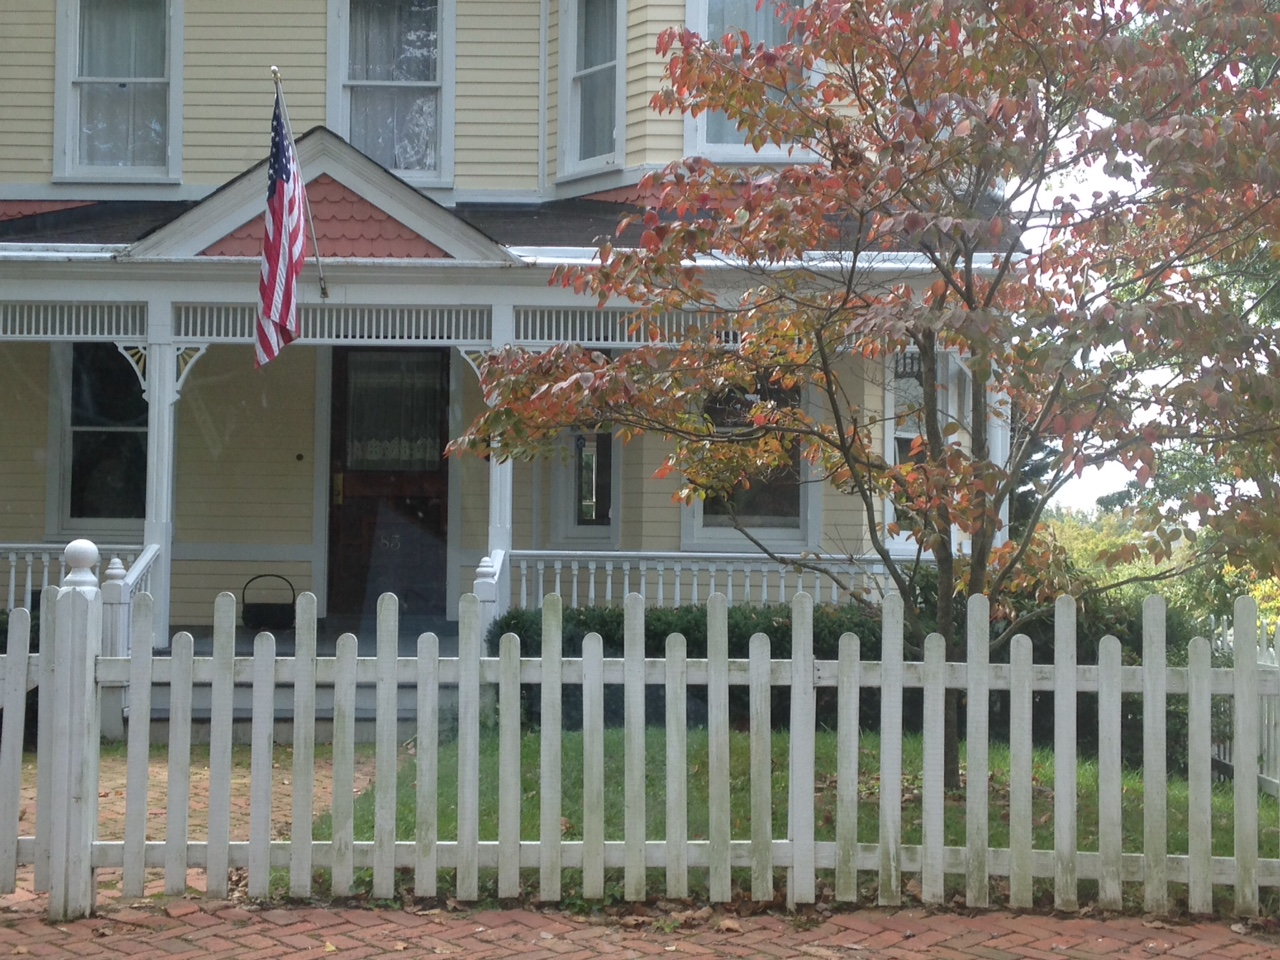 Holy Moments – Day 15 – Secret Dream